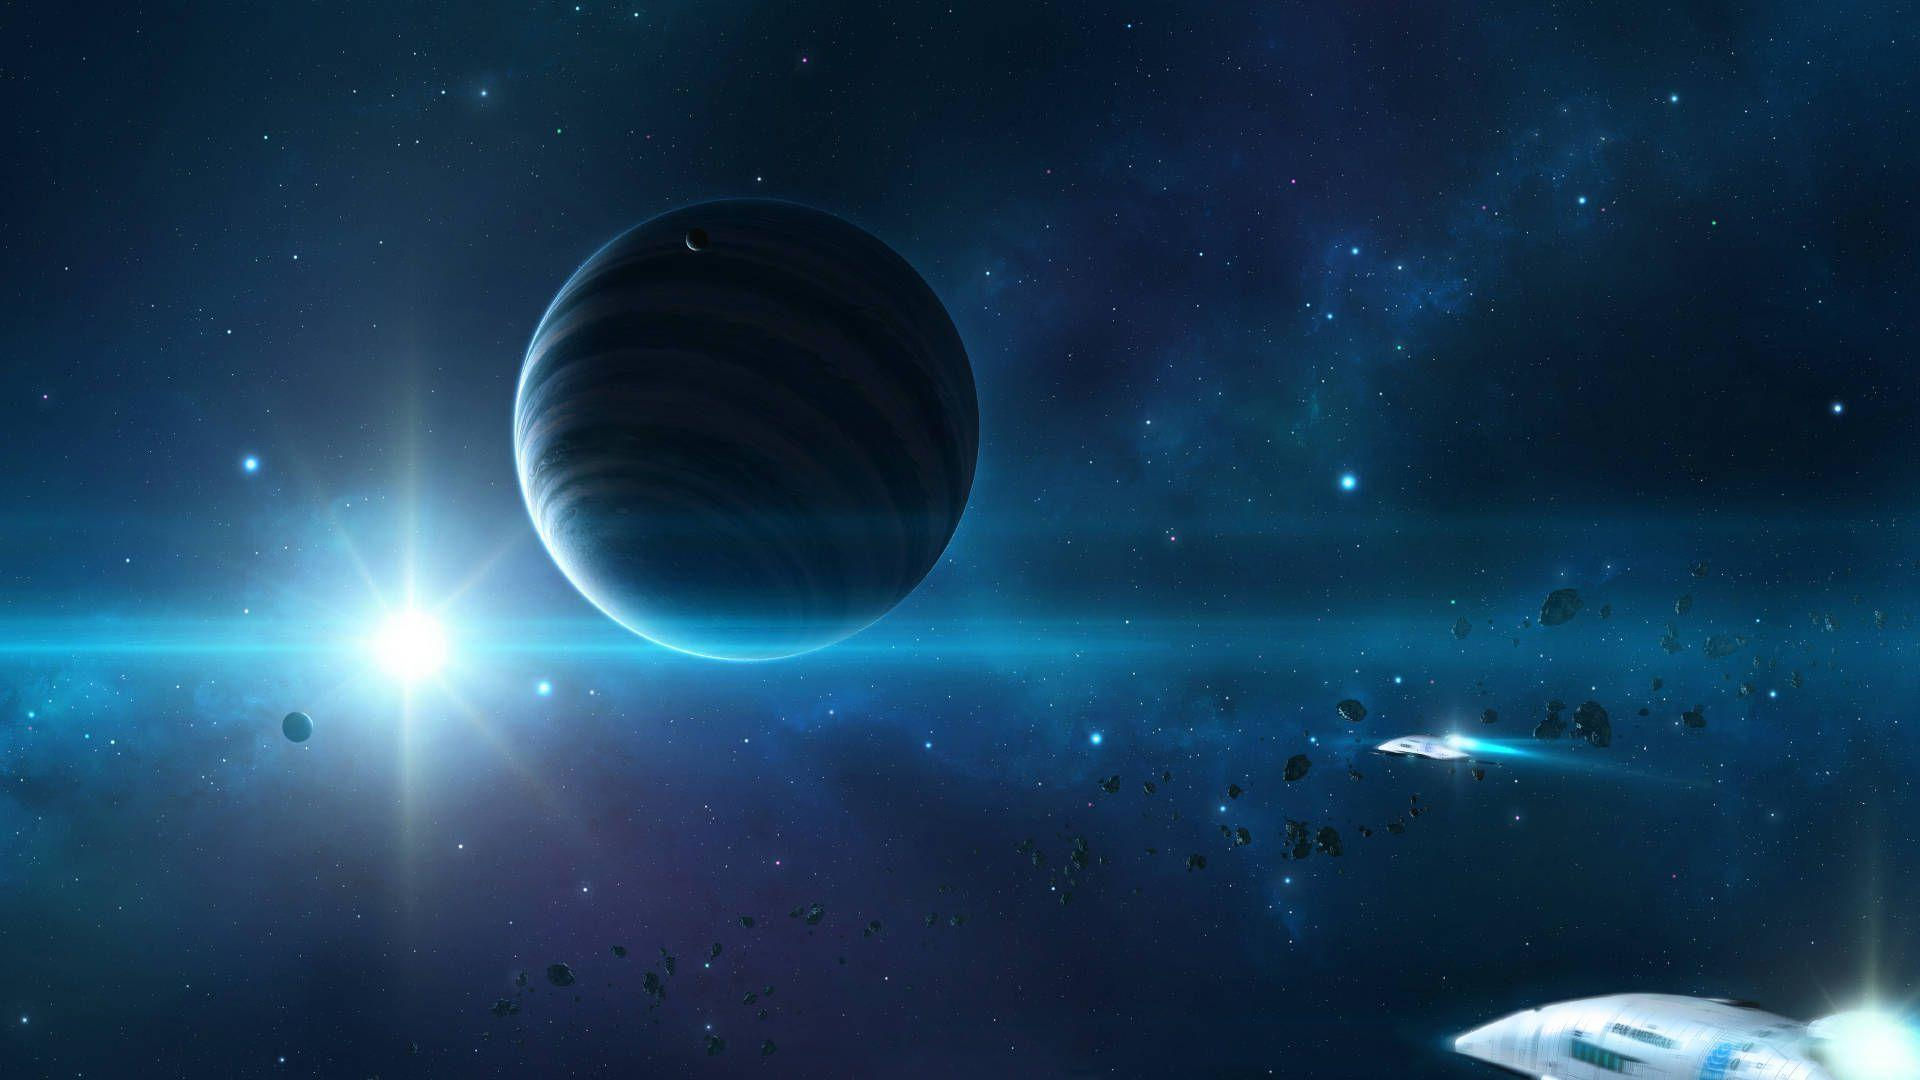 Outer Space Wallpapers Hd Cool 7 HD Wallpaperscom